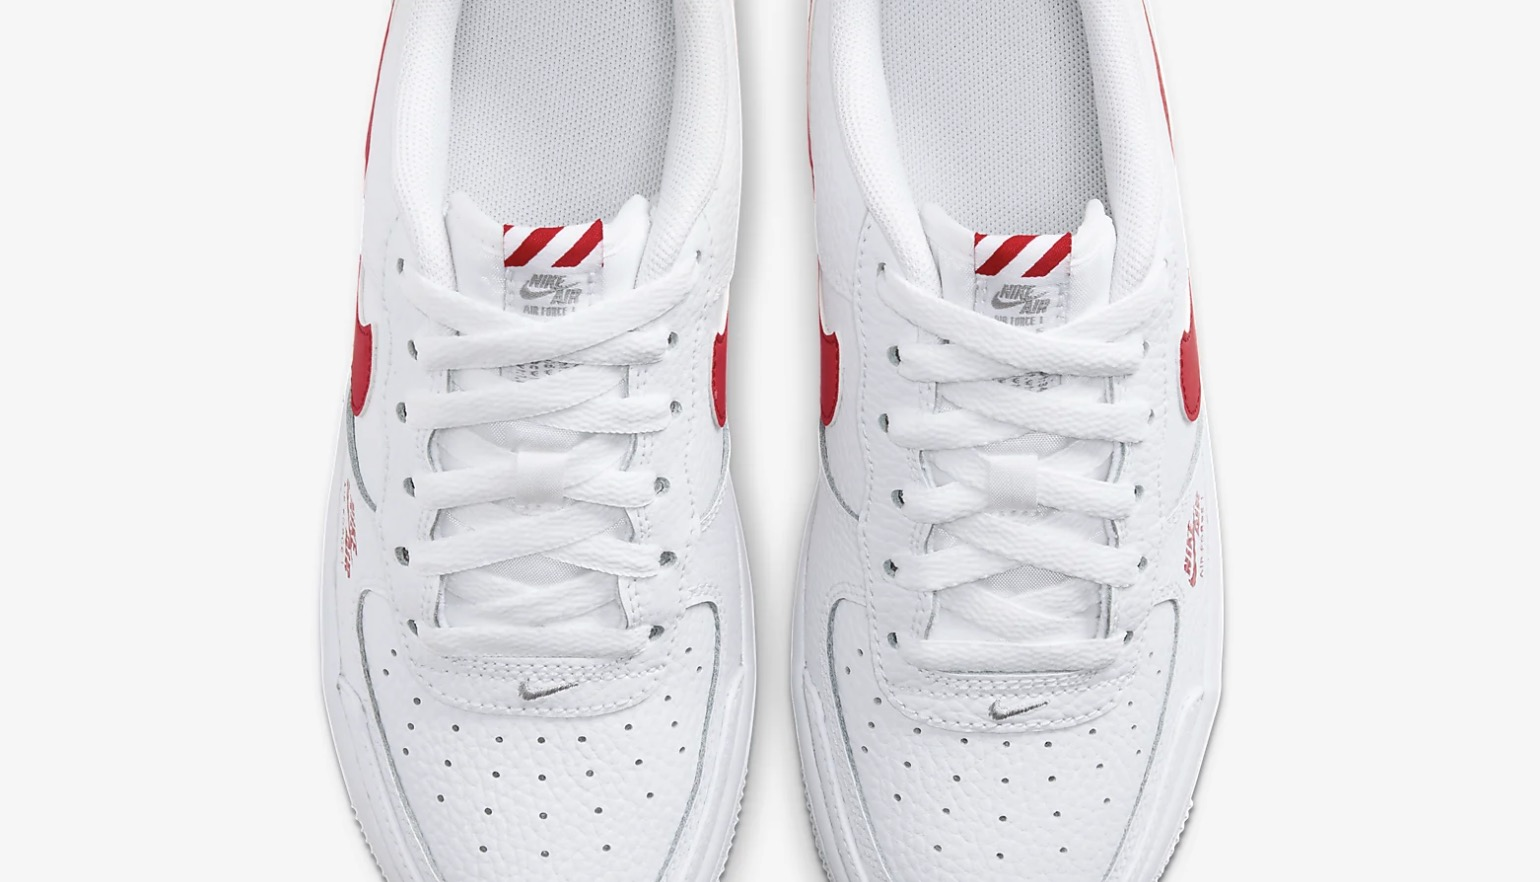 Nike Air Force 1 Utility White Red CZ4203-100 3 laces